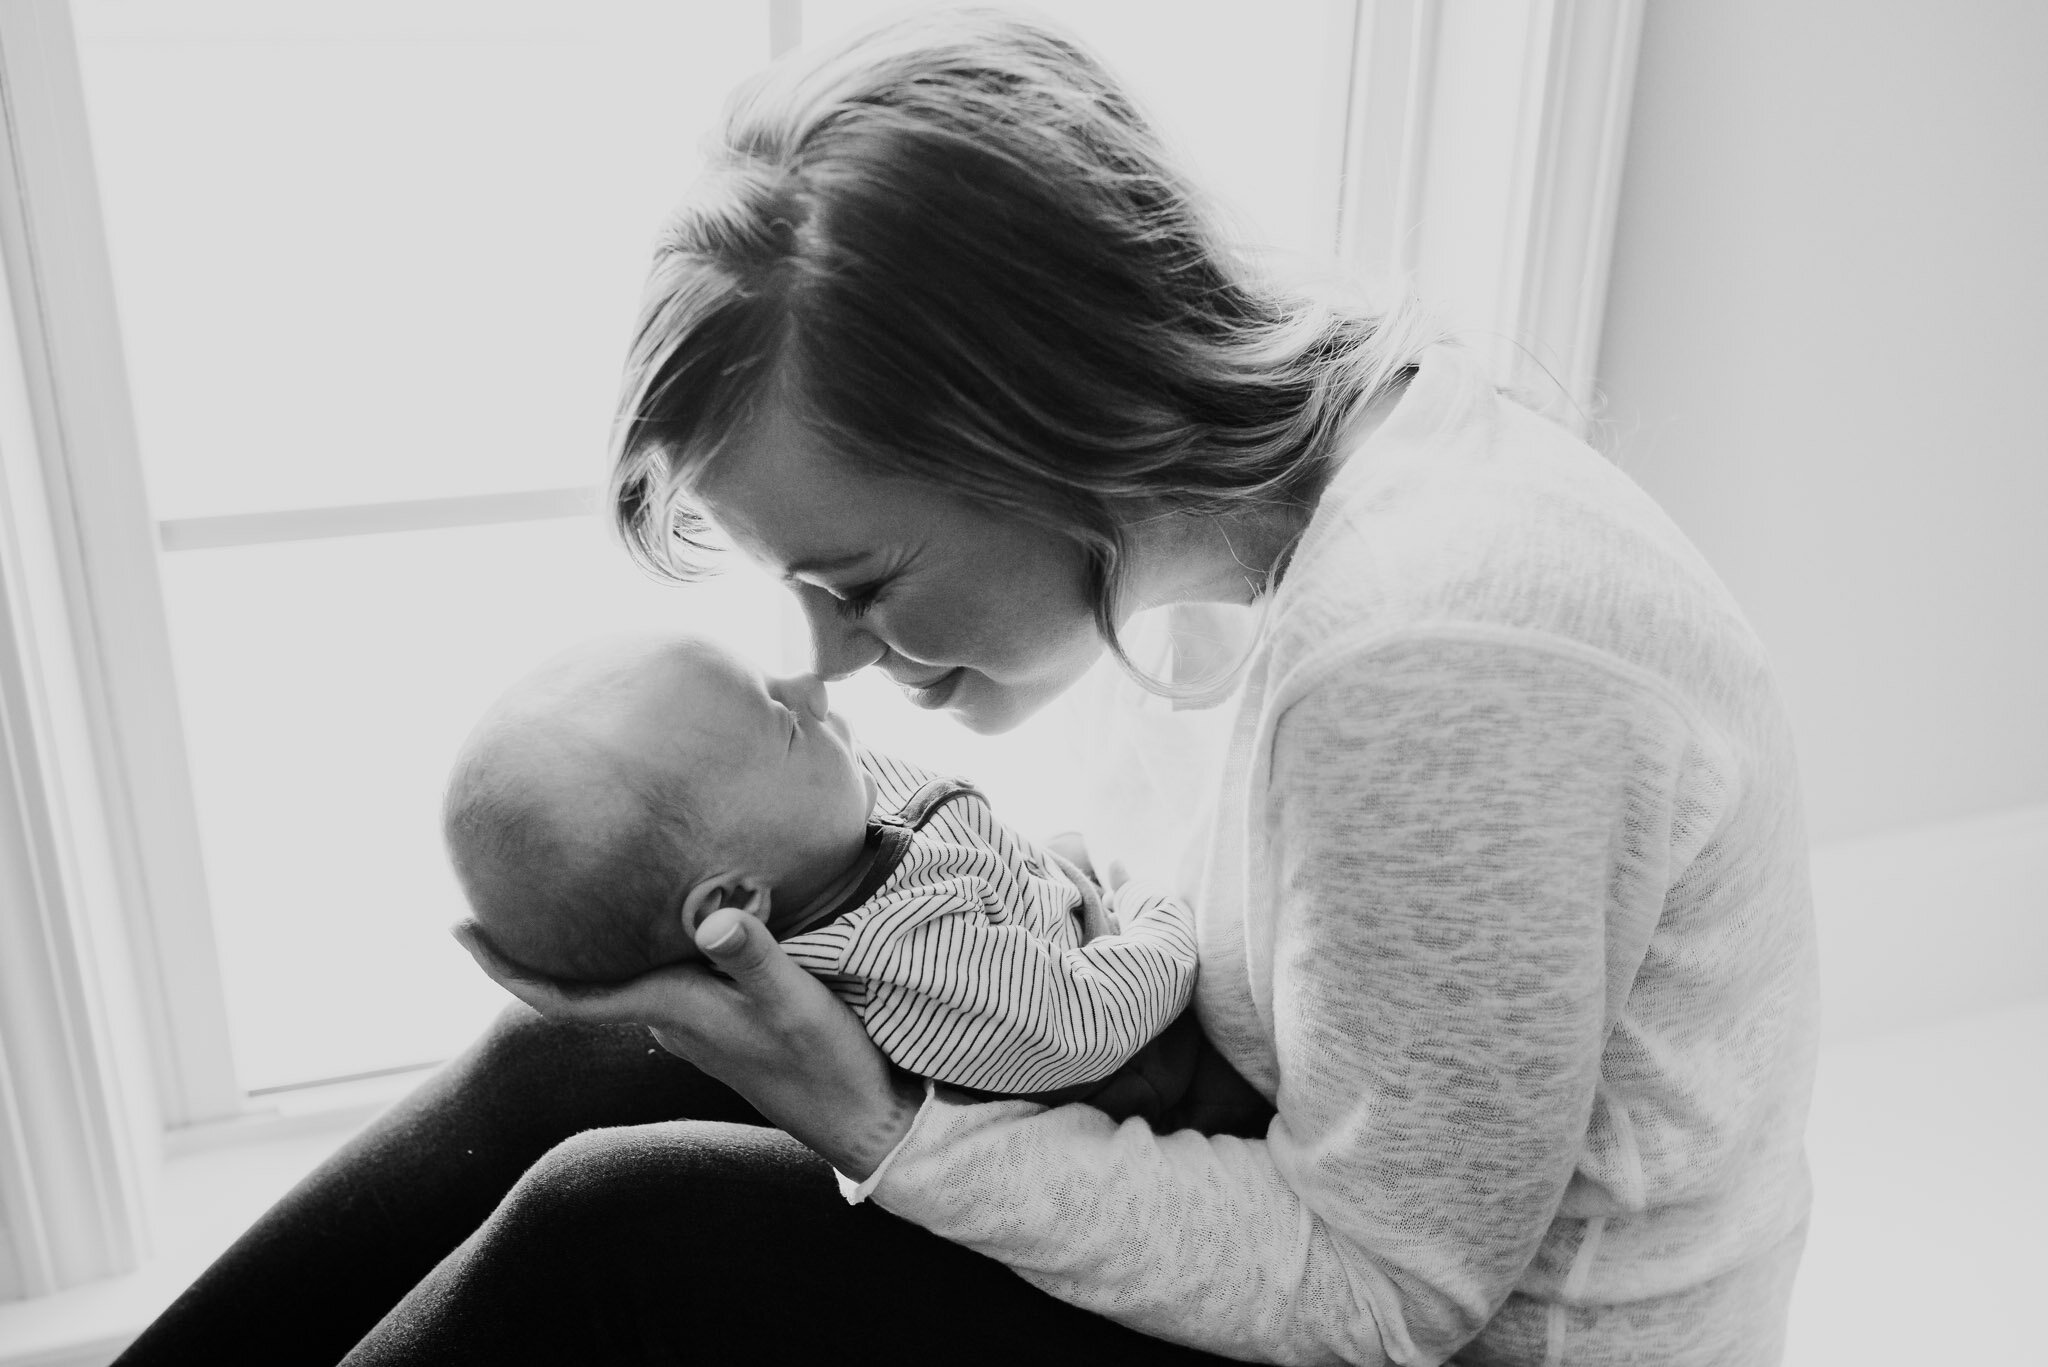 woman and baby touching noses